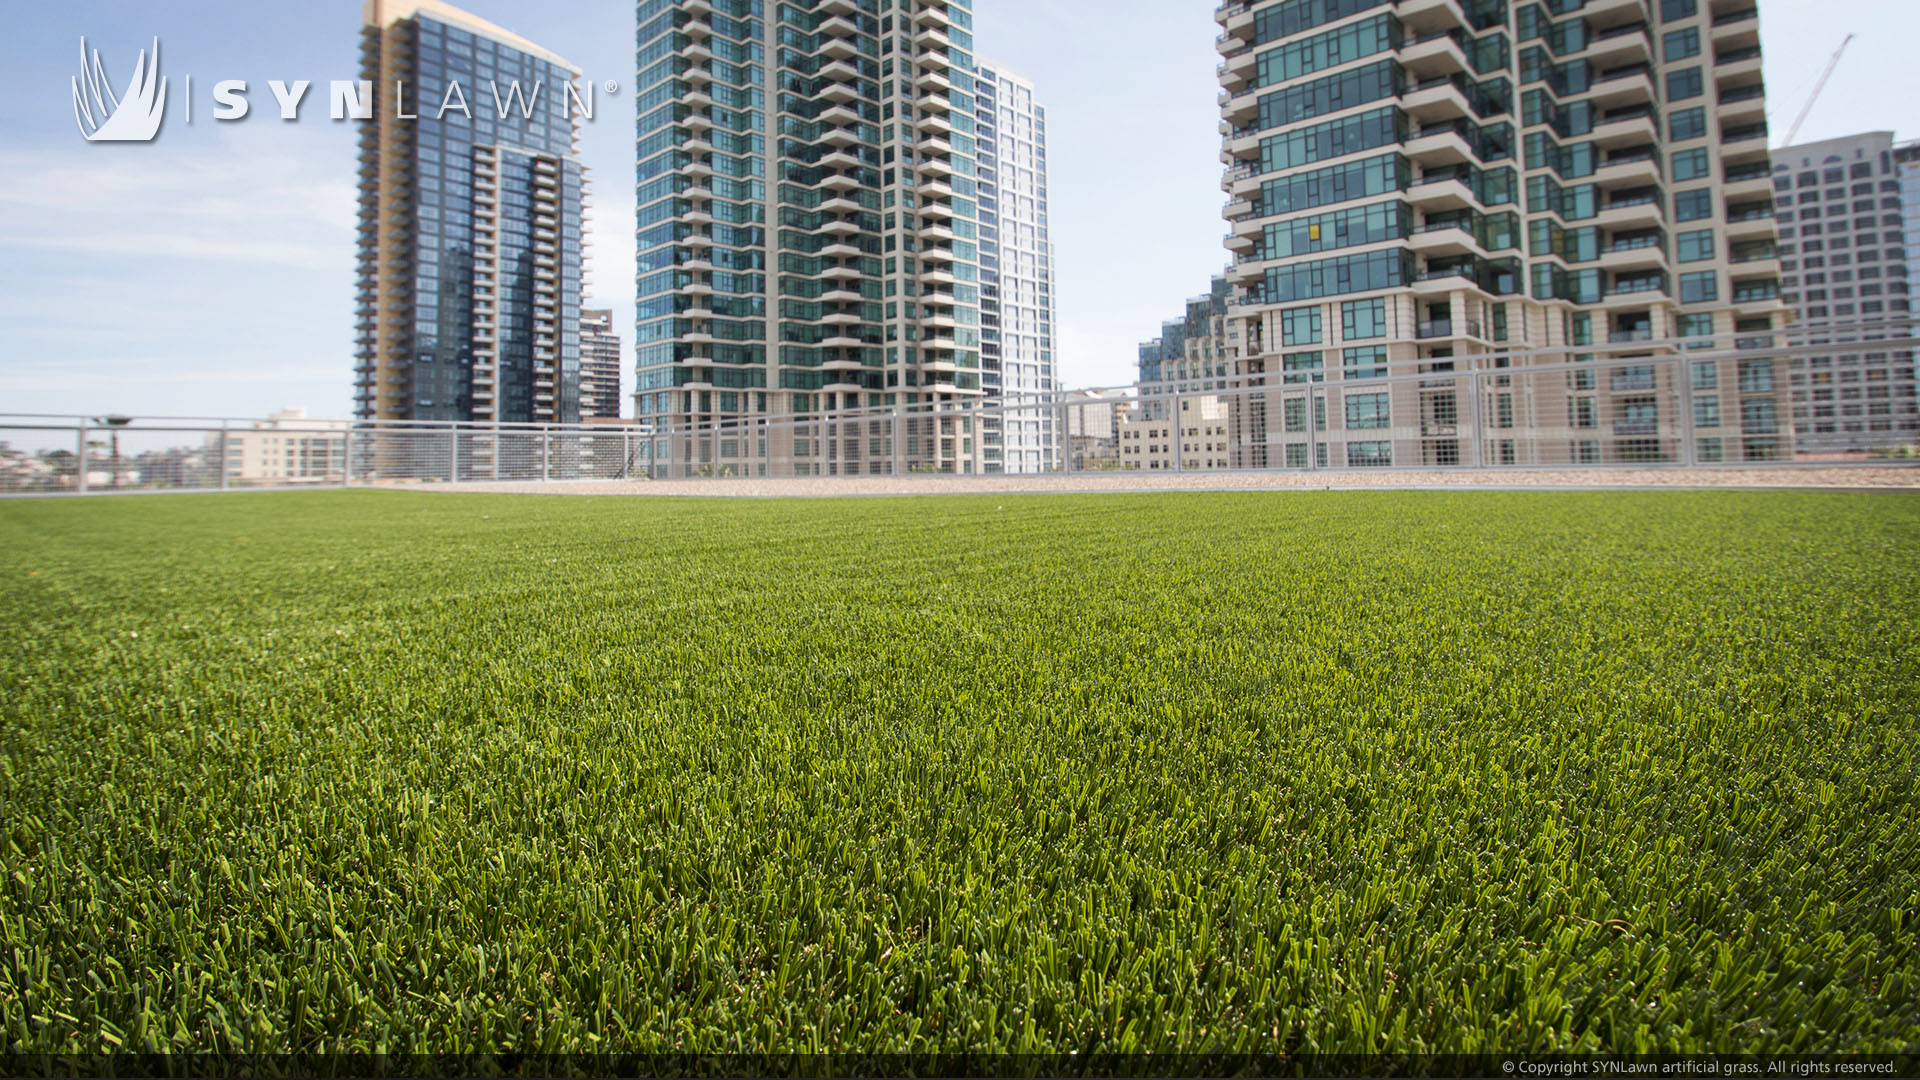 artificial grass installation for synlawn rooftop